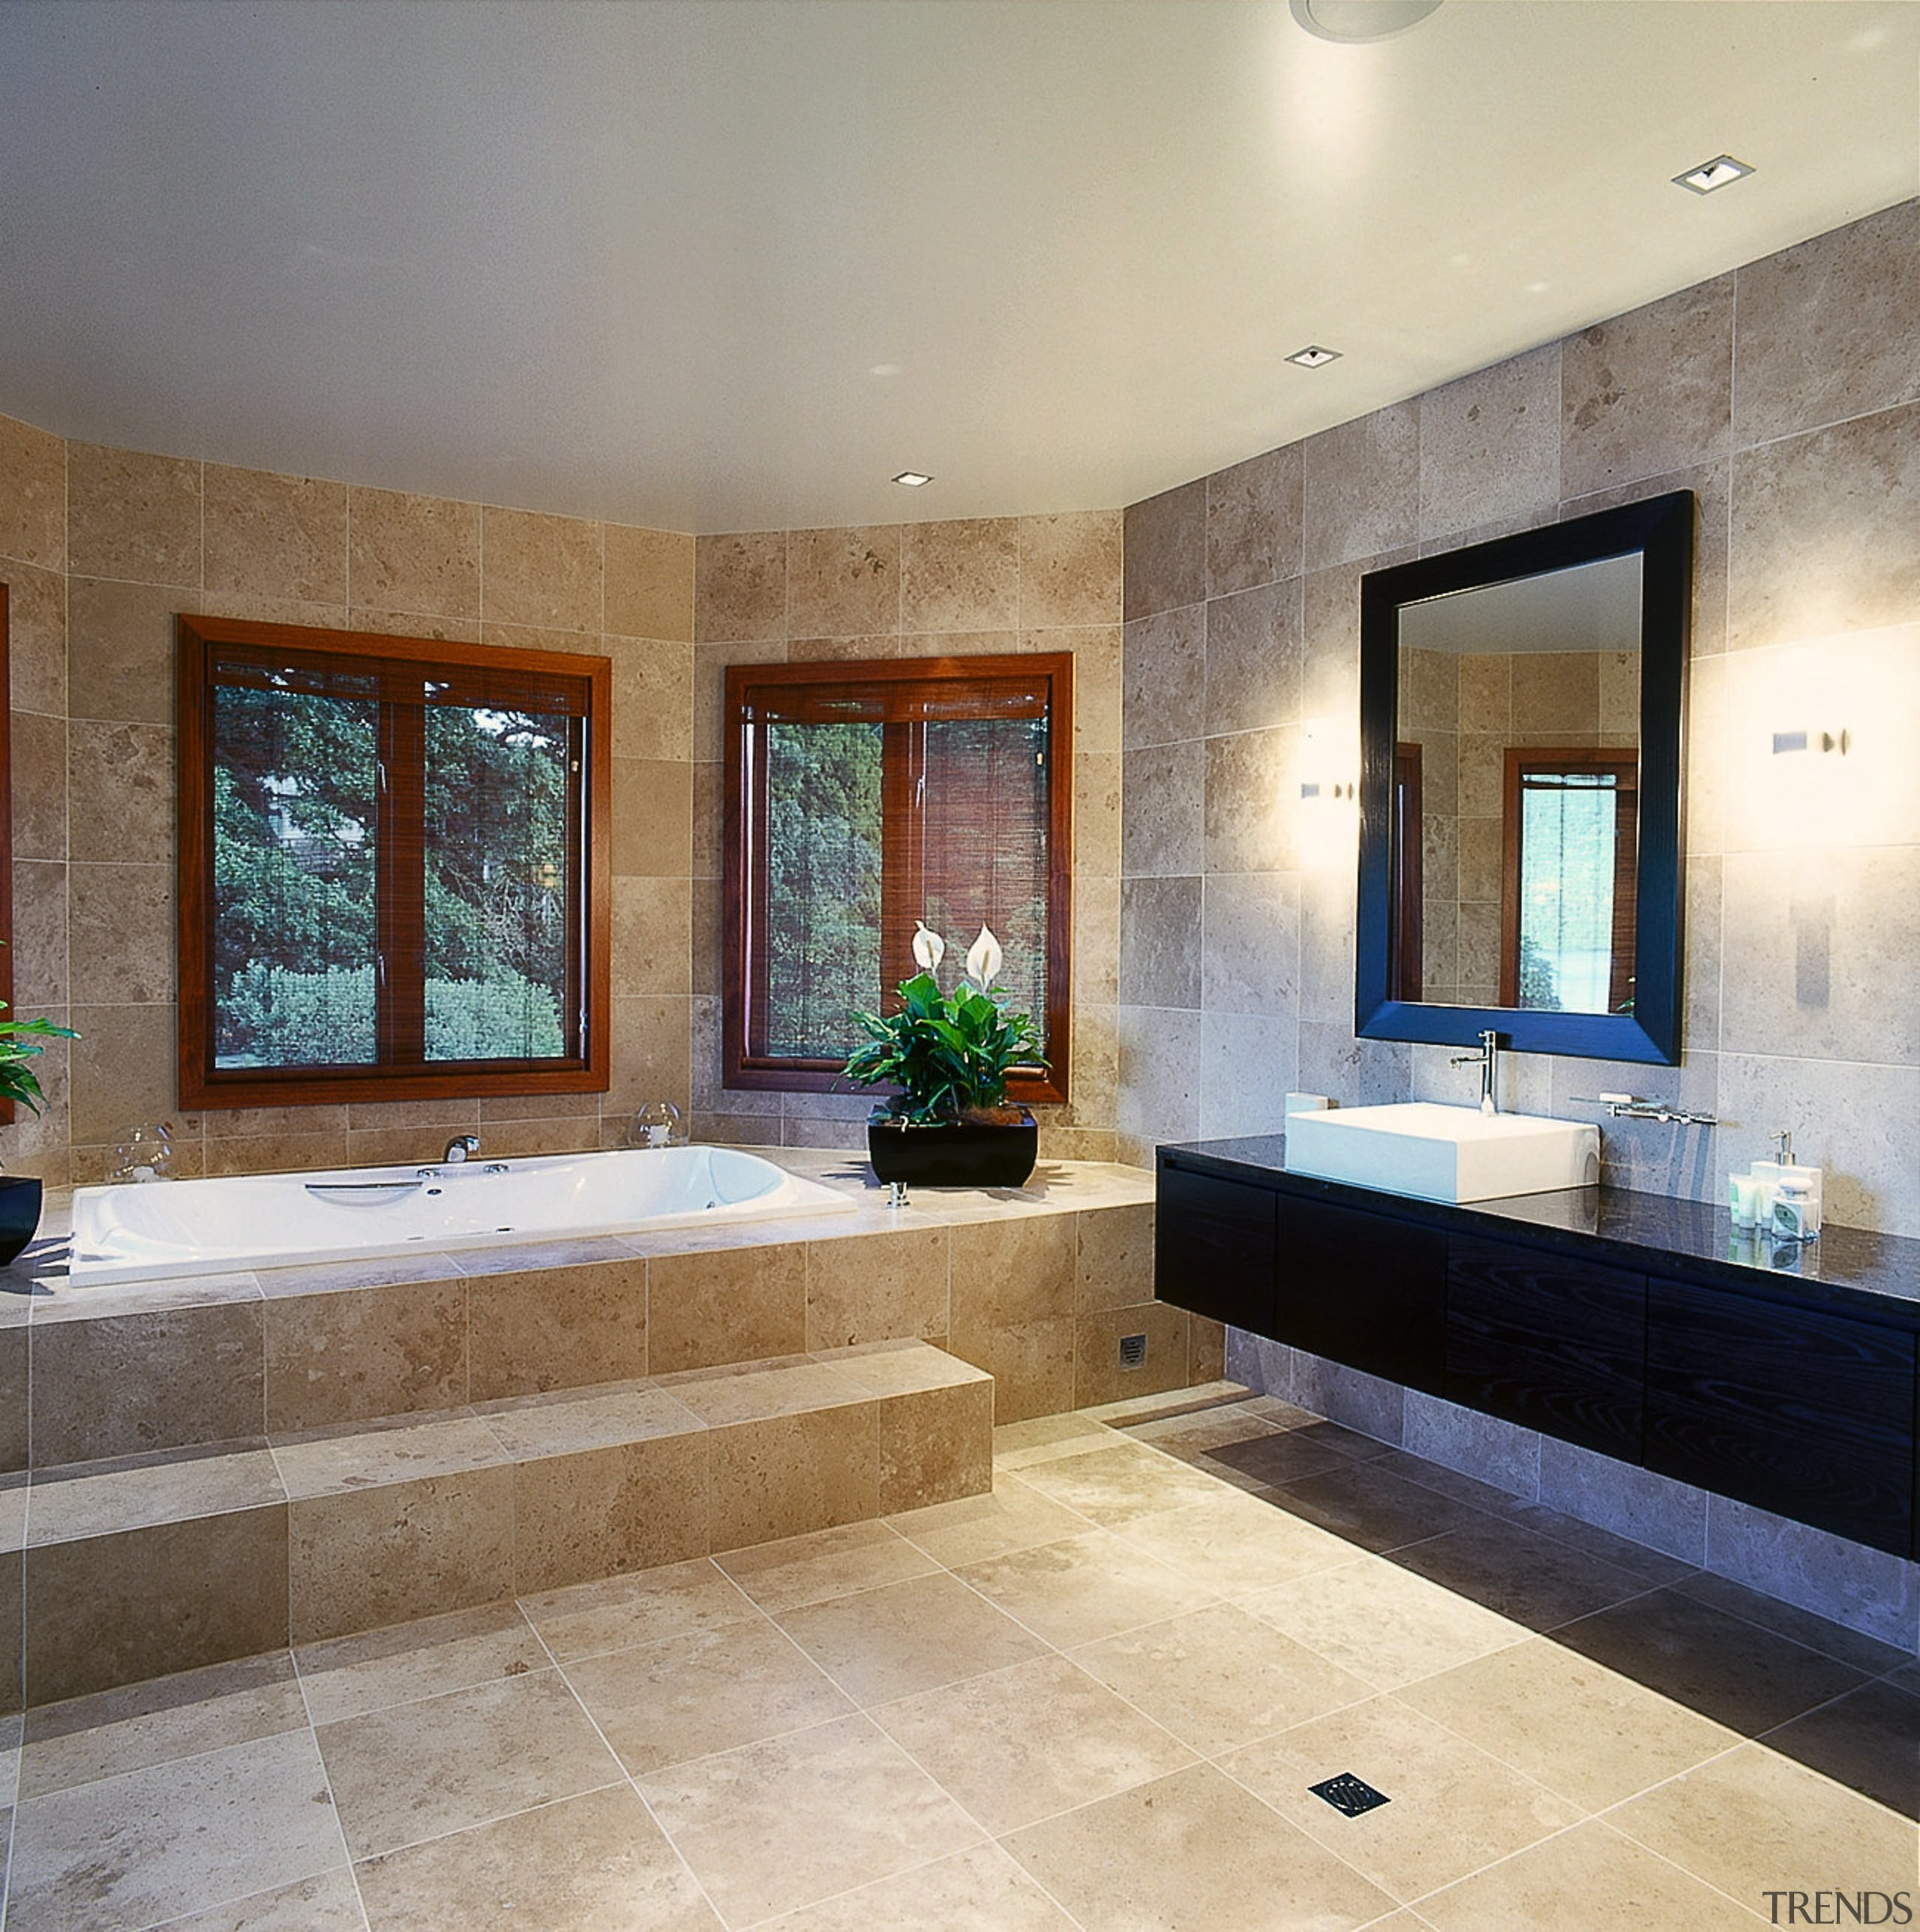 View of the spacious and fully tiled bathroom. bathroom, ceiling, estate, floor, flooring, home, interior design, lobby, property, real estate, room, tile, wall, window, wood flooring, orange, gray